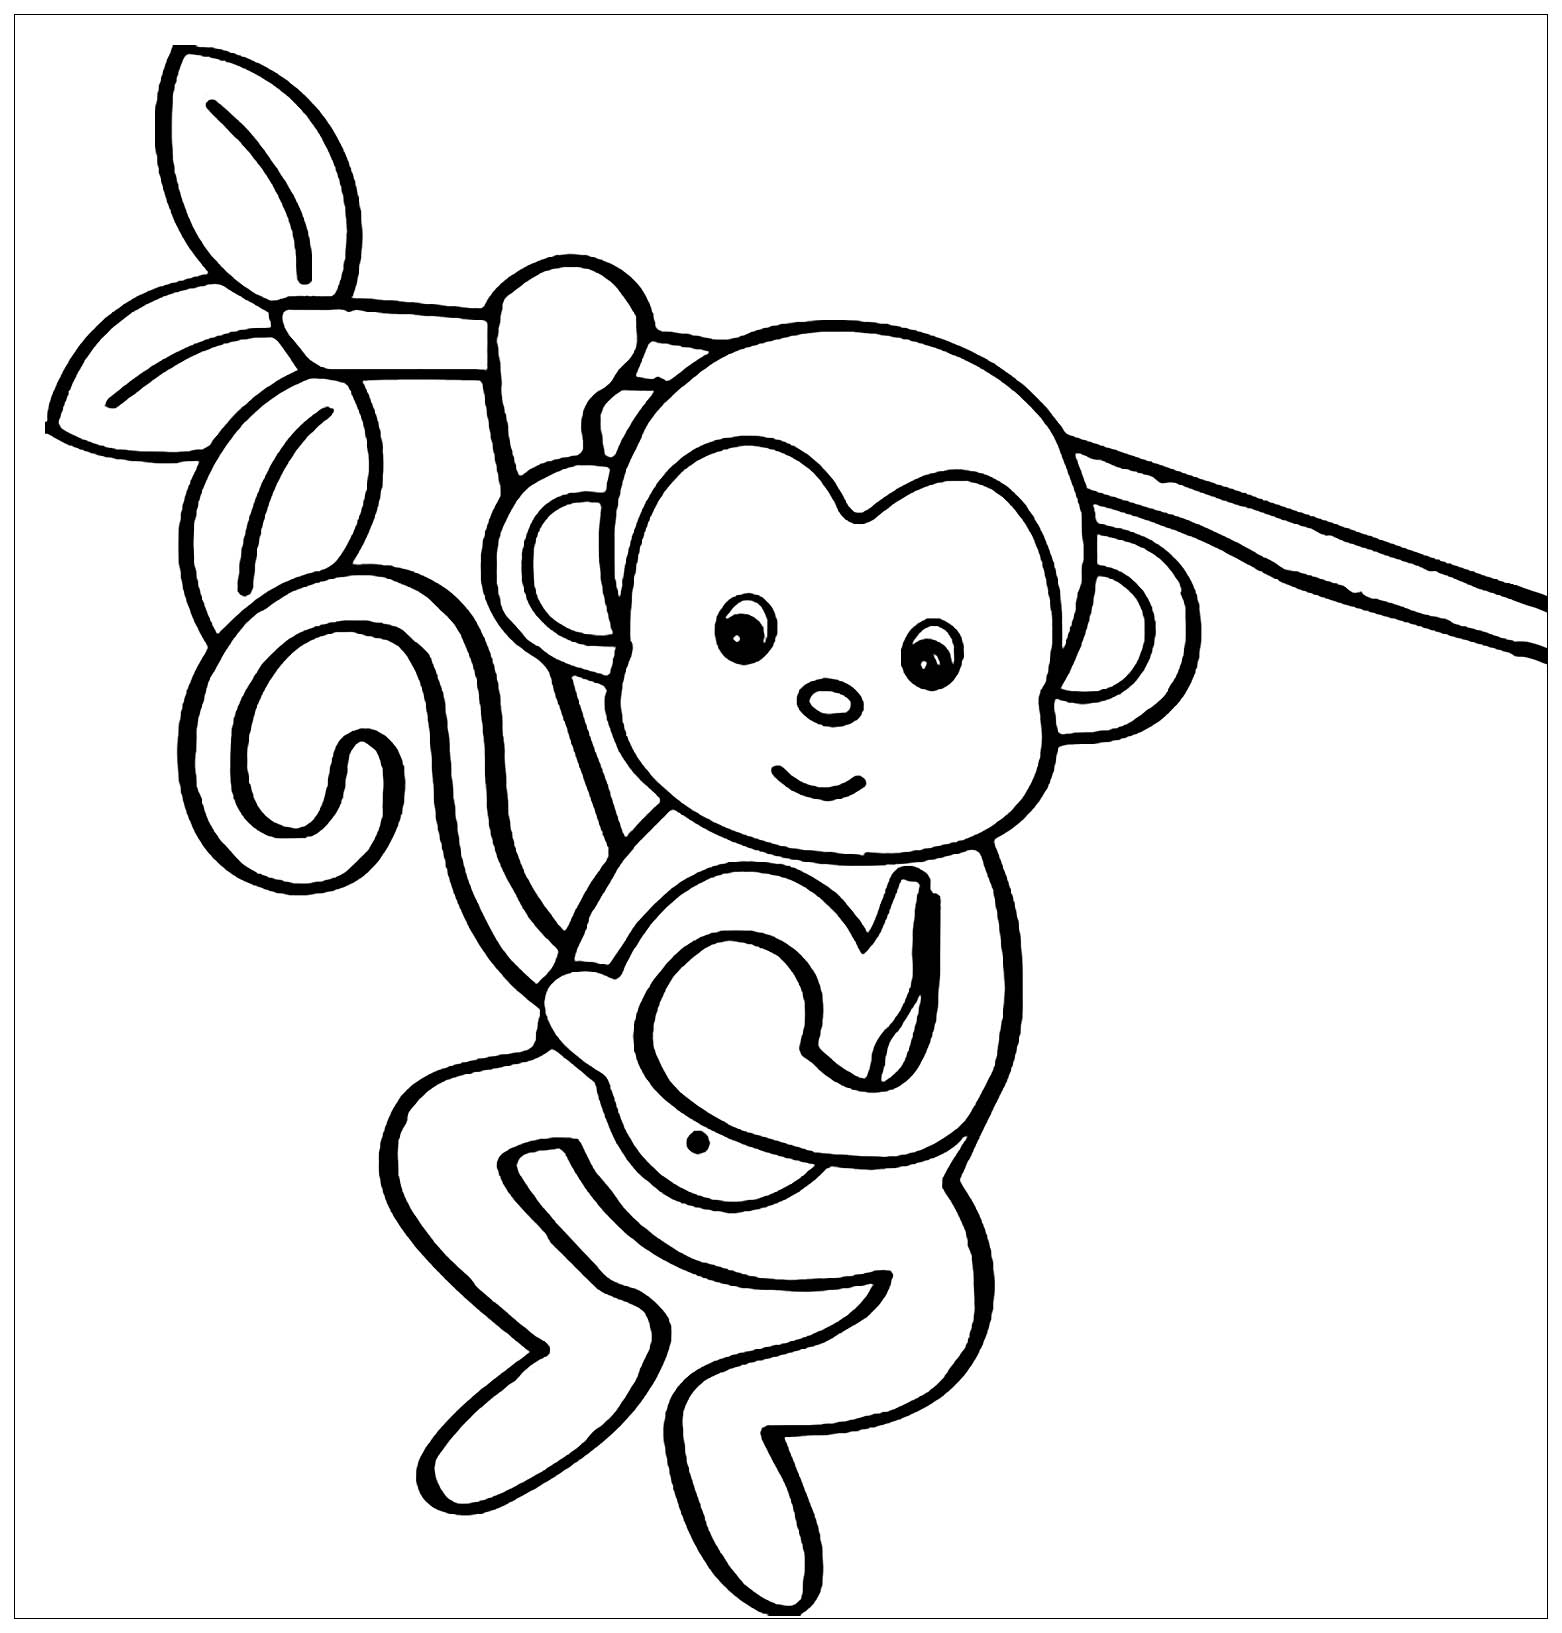 coloring outlines for kids bird coloring pages for outlines kids coloring